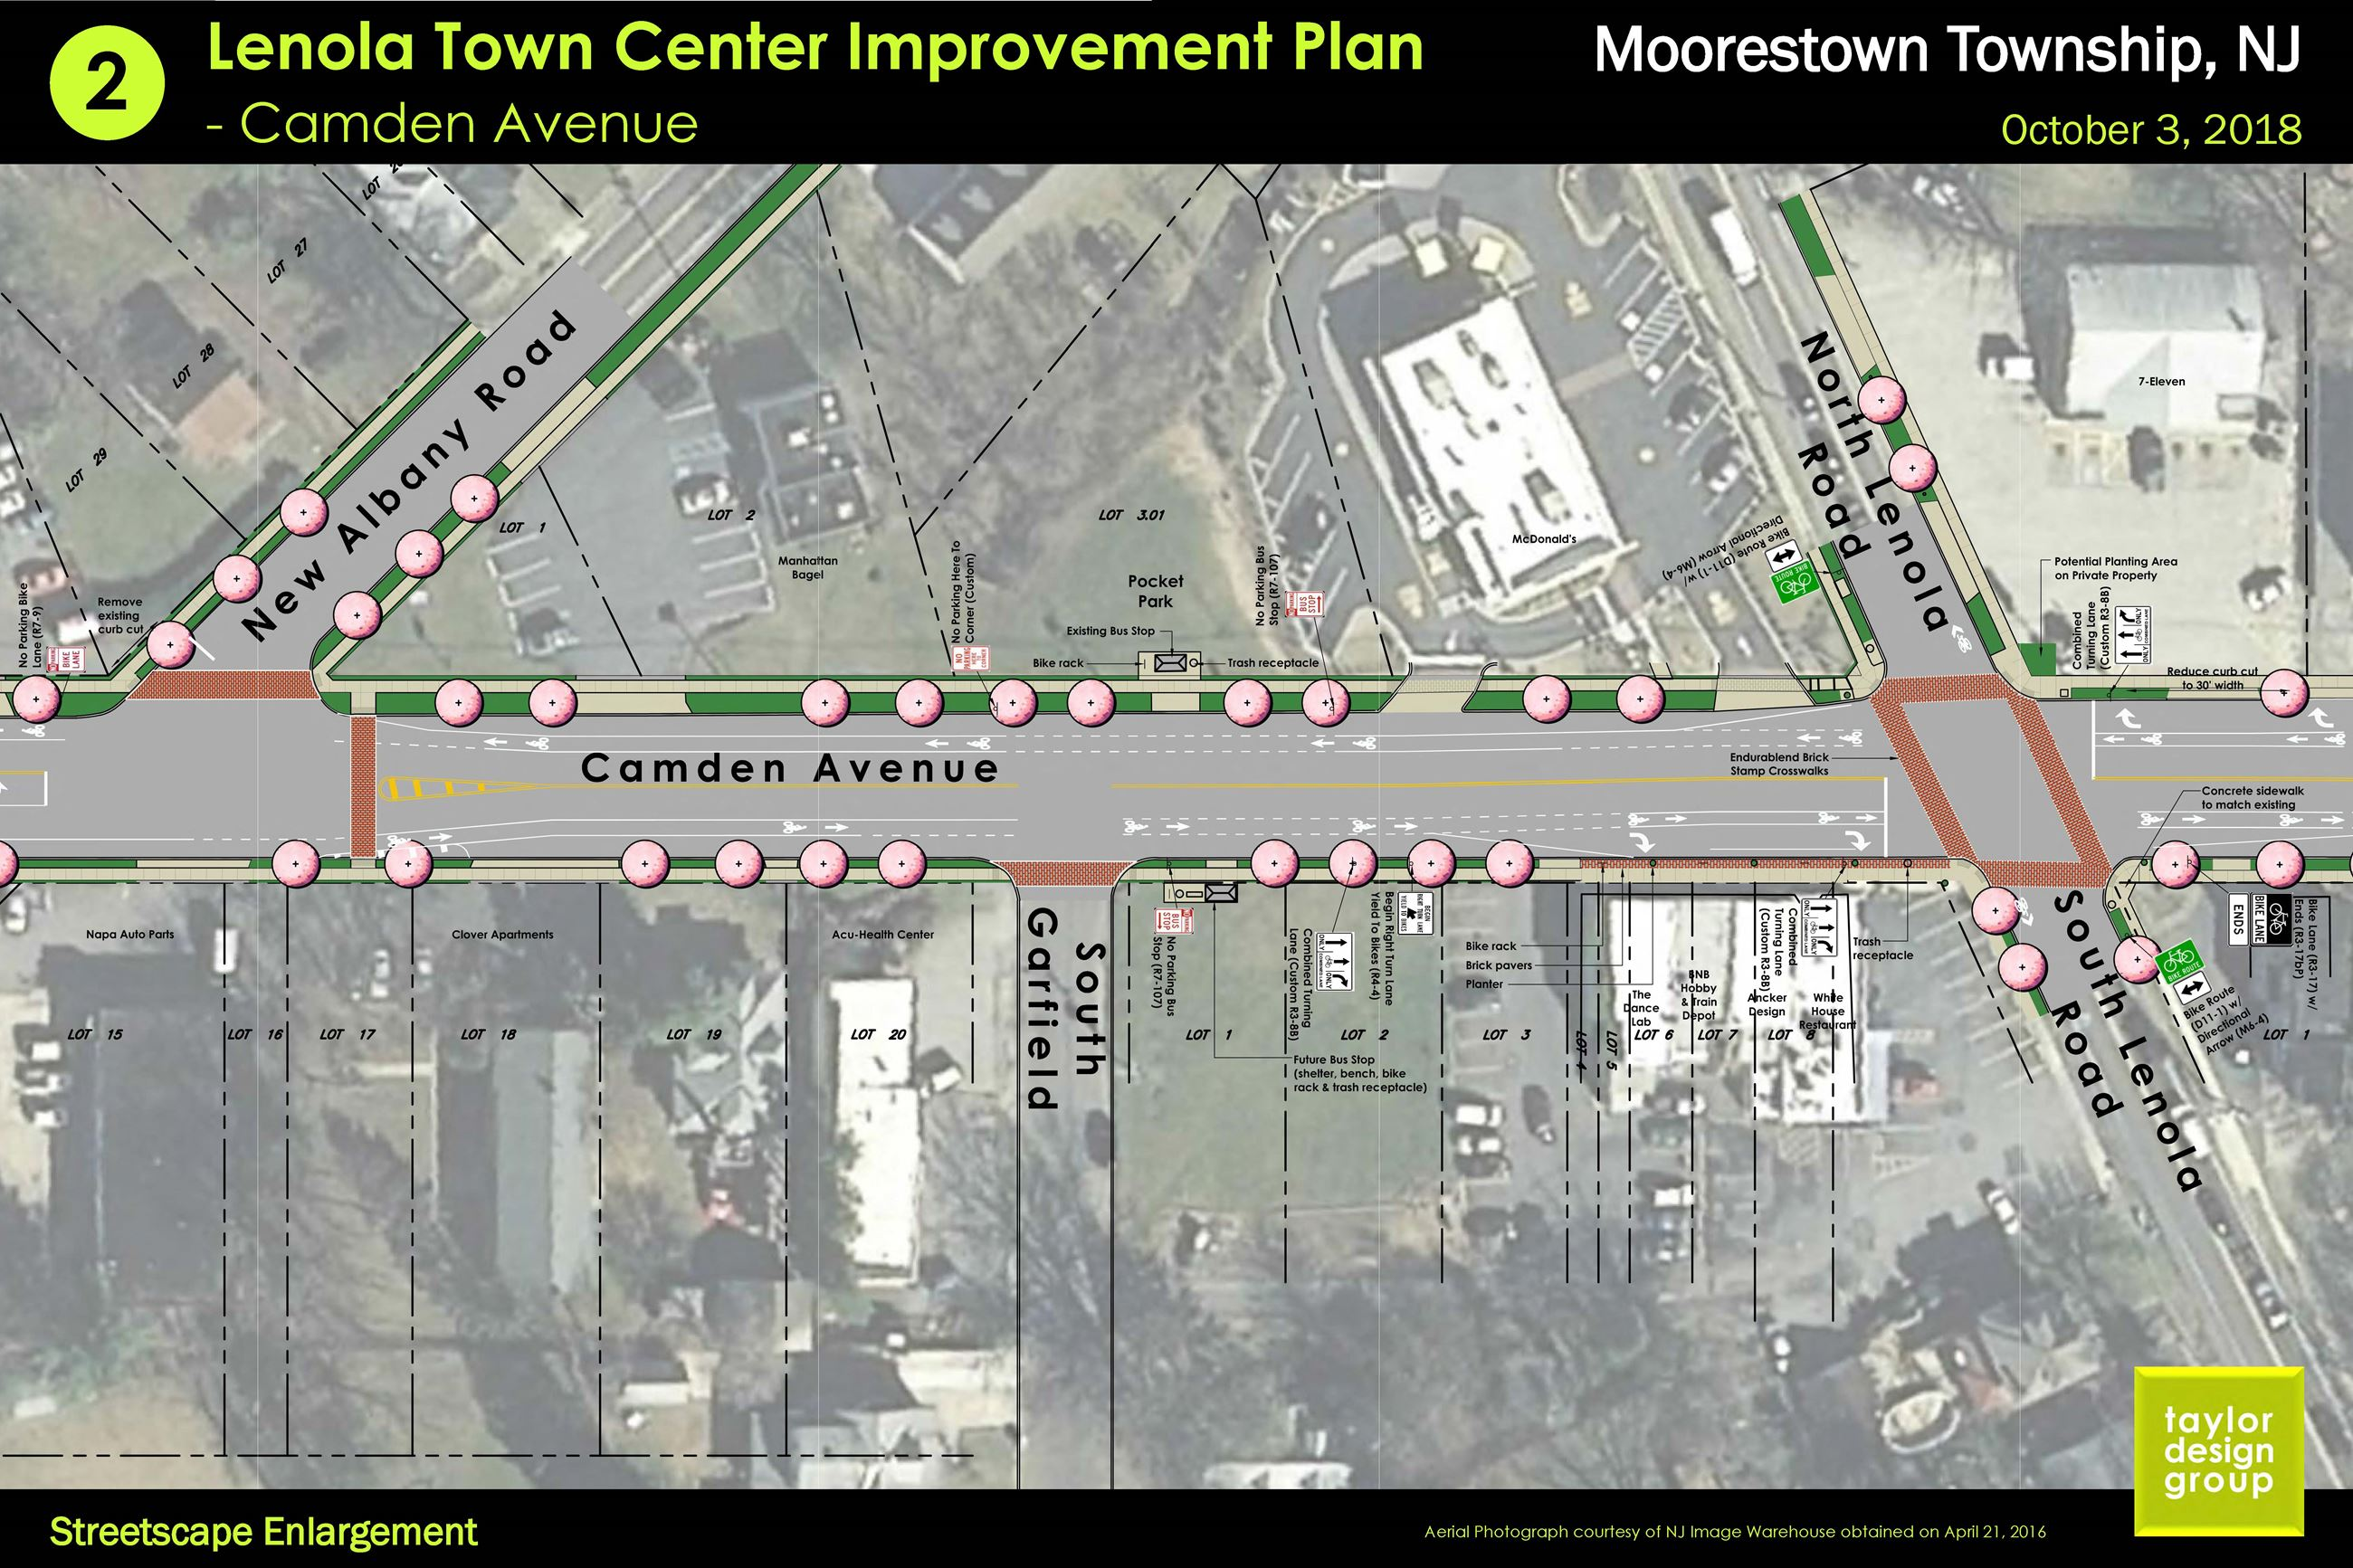 2 Streetscape Enlargement of the Concept Plan for the Lenola Town Center Improvement Plan.